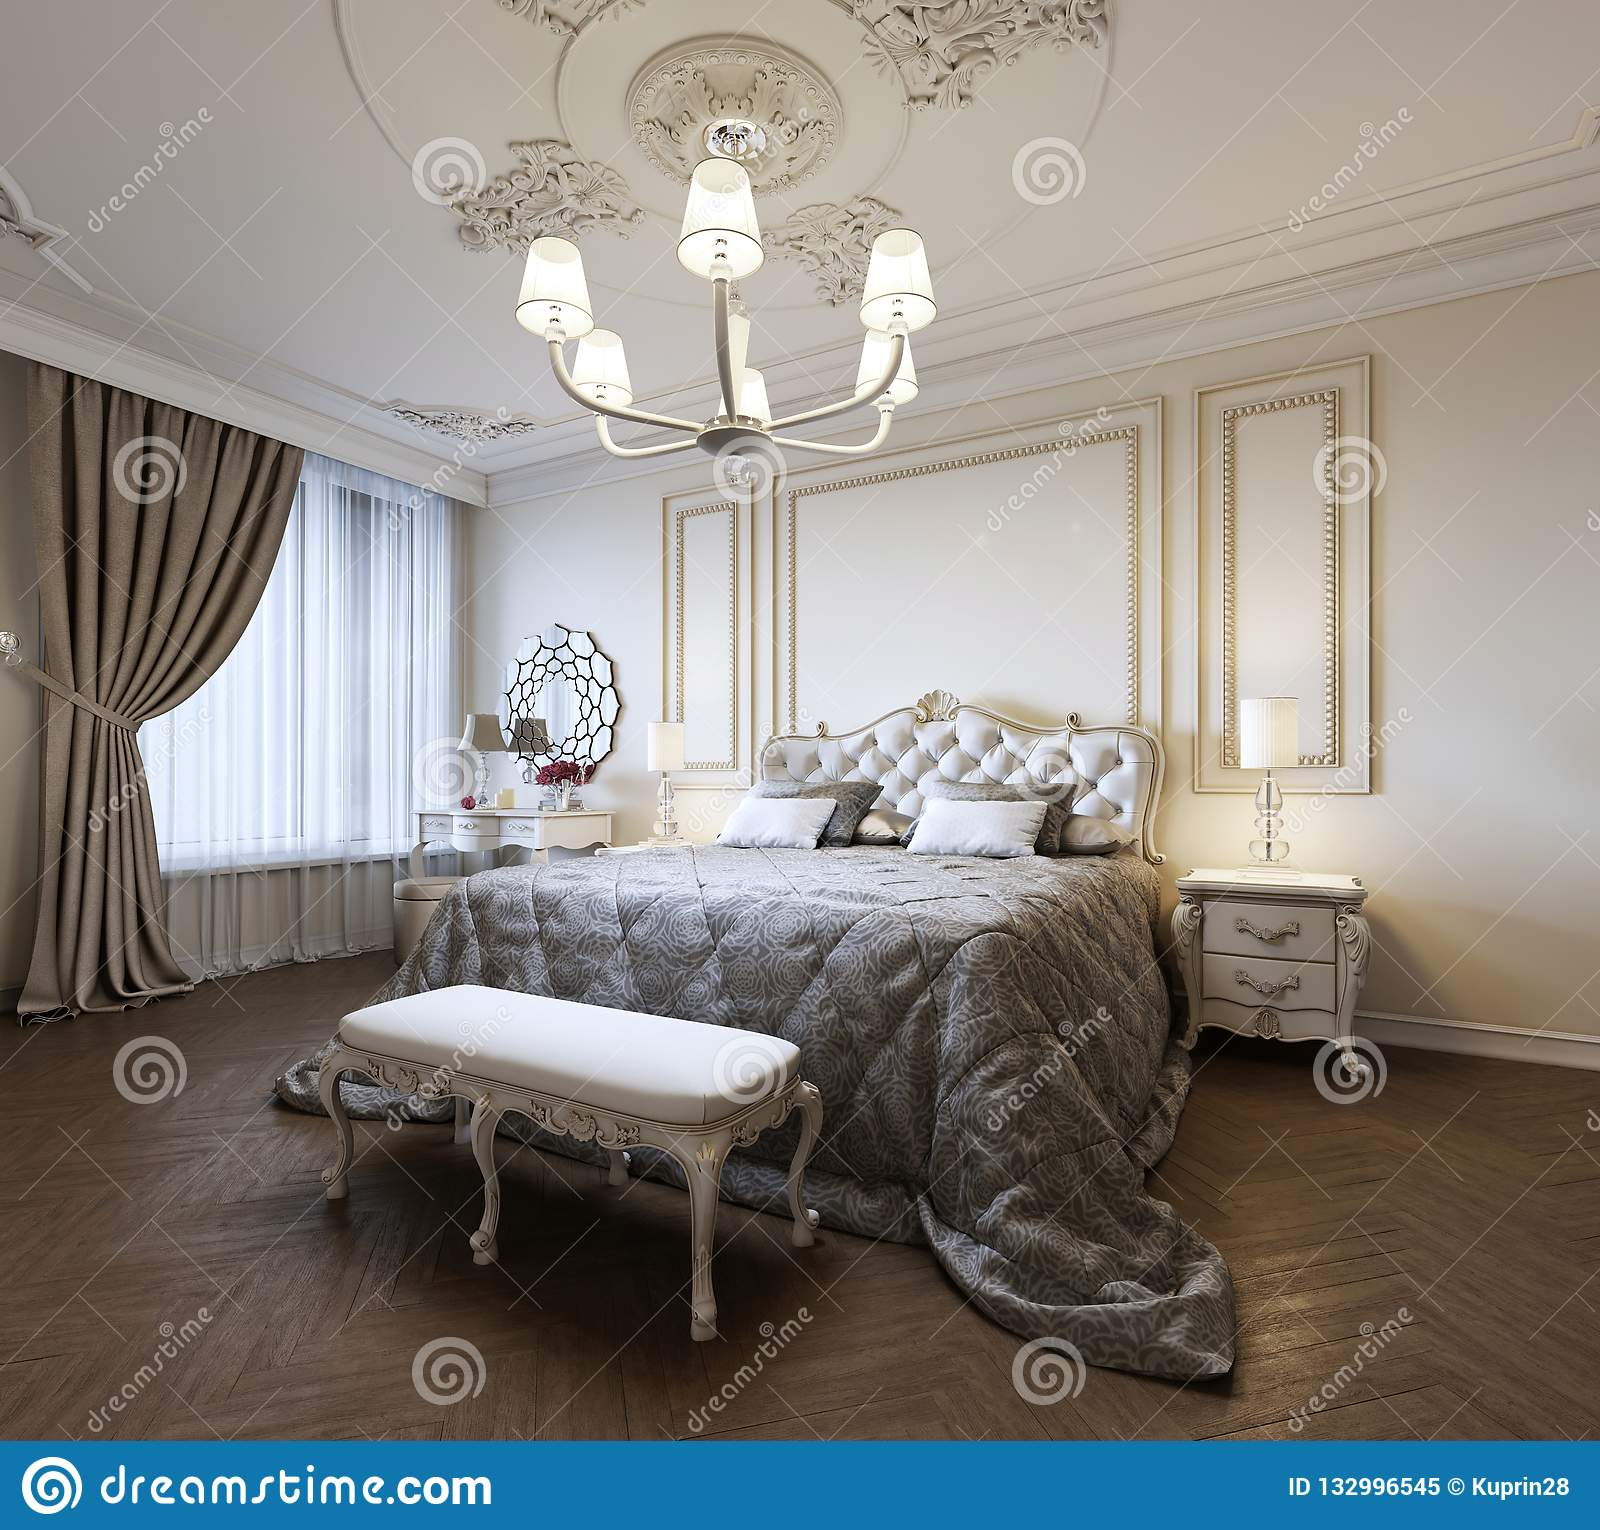 Urban Contemporary Modern Classic Traditional Bedroom Interior